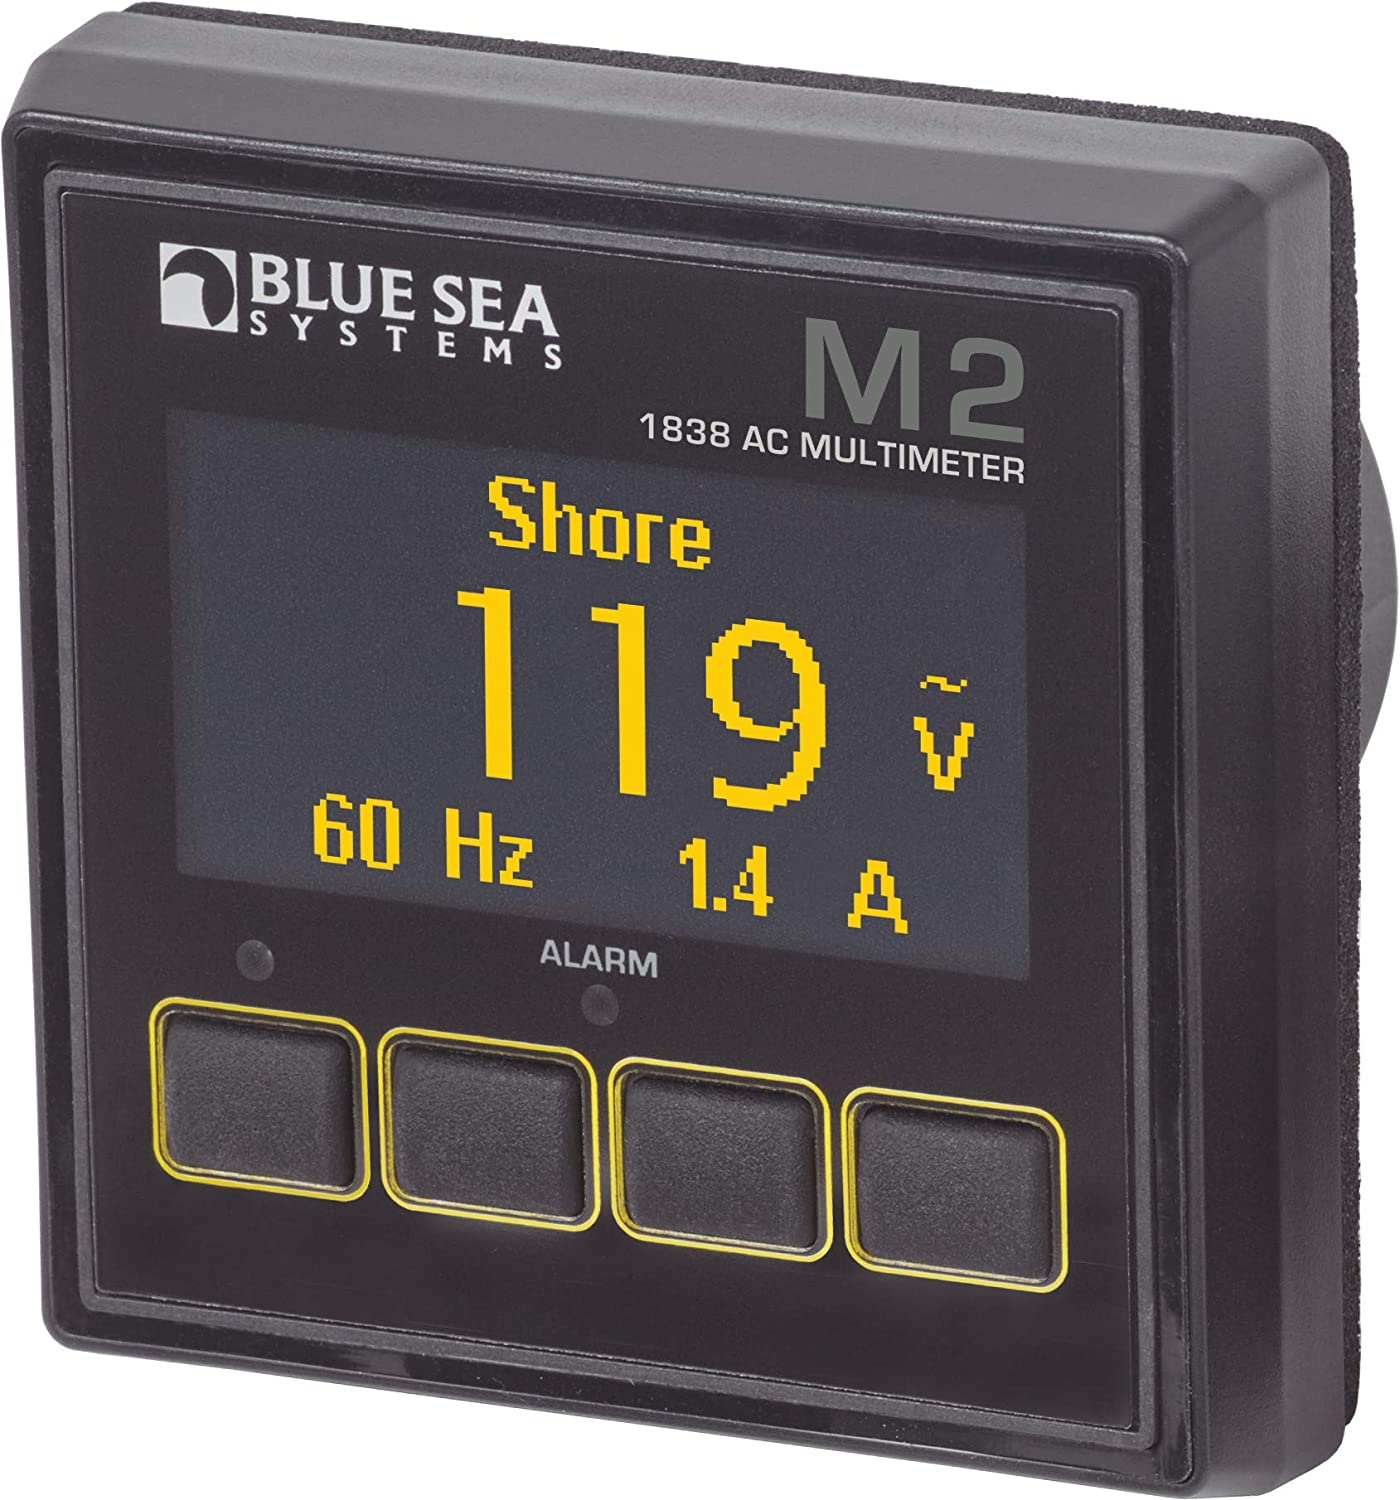 Blue Sea Systems M2 OLED Digital Meters Blue Sea Systems Sports 1832